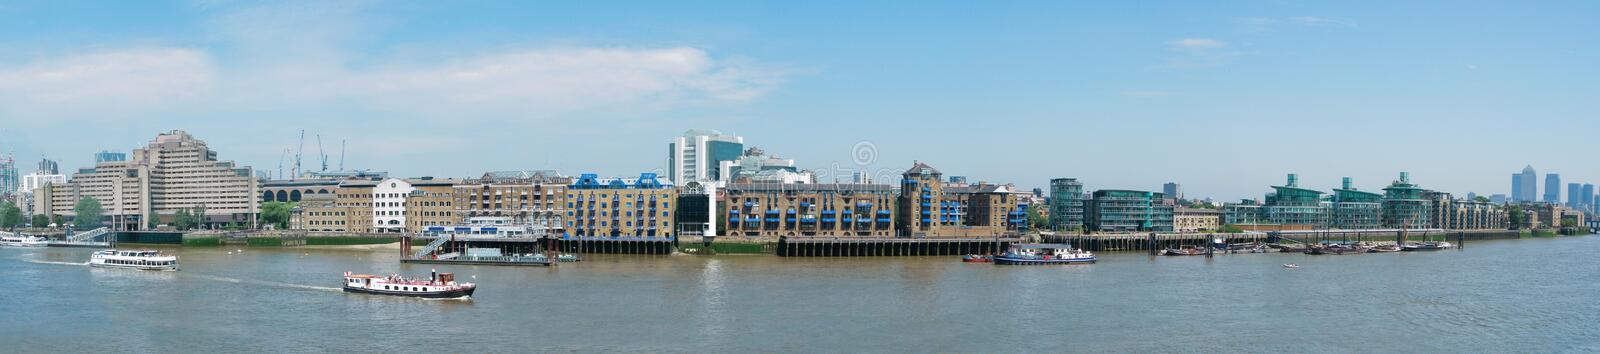 Panorama view of Thames river in London royalty free stock photo